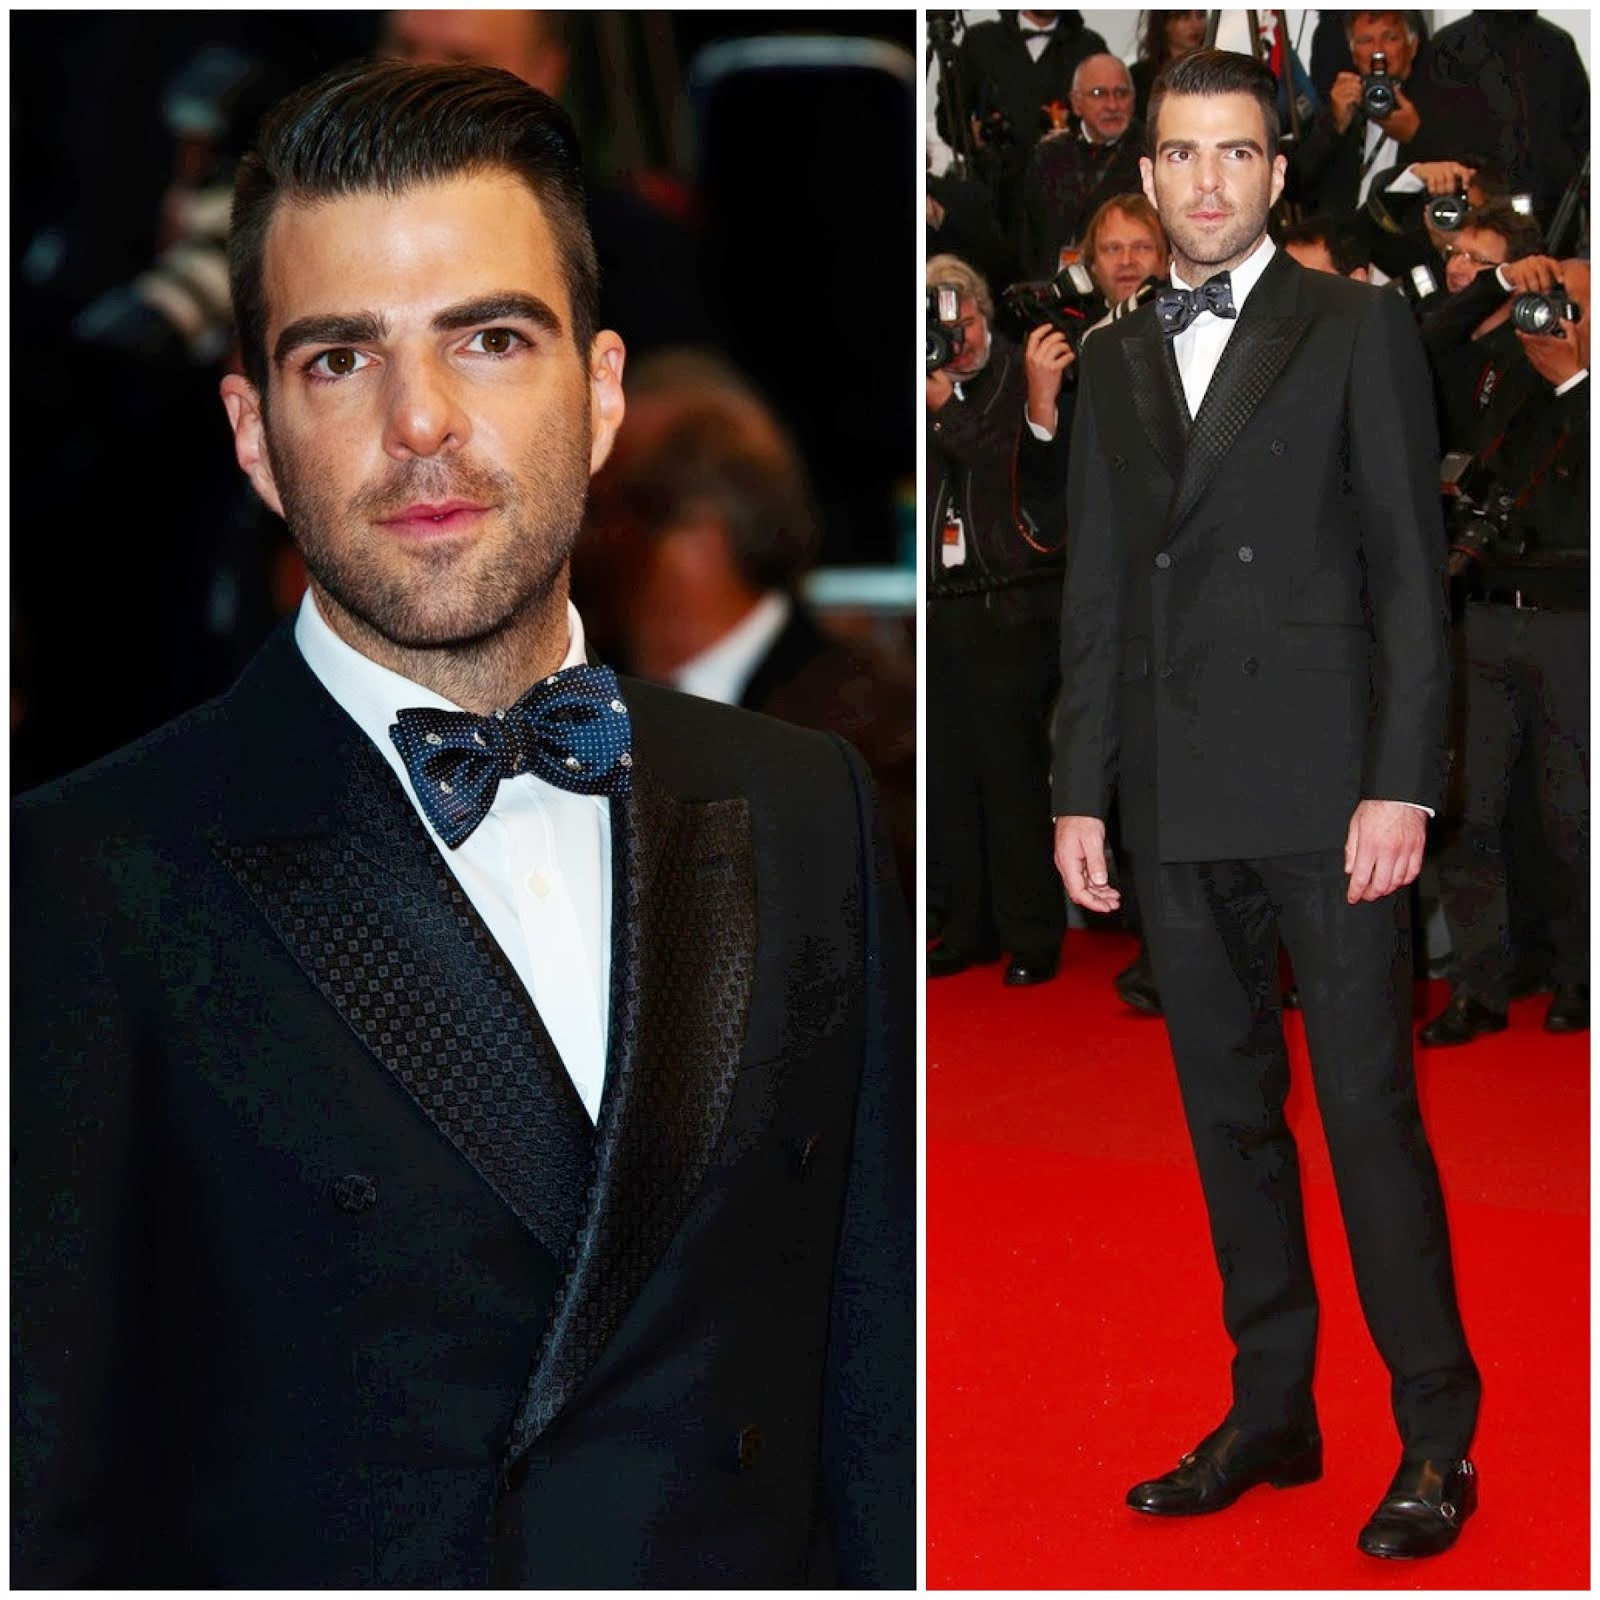 00O00 Menswear Blog: Zachary Quinto in Alexander McQueen - 'All Is Lost' red carpet premiere, 66th Cannes Film Festival 2013